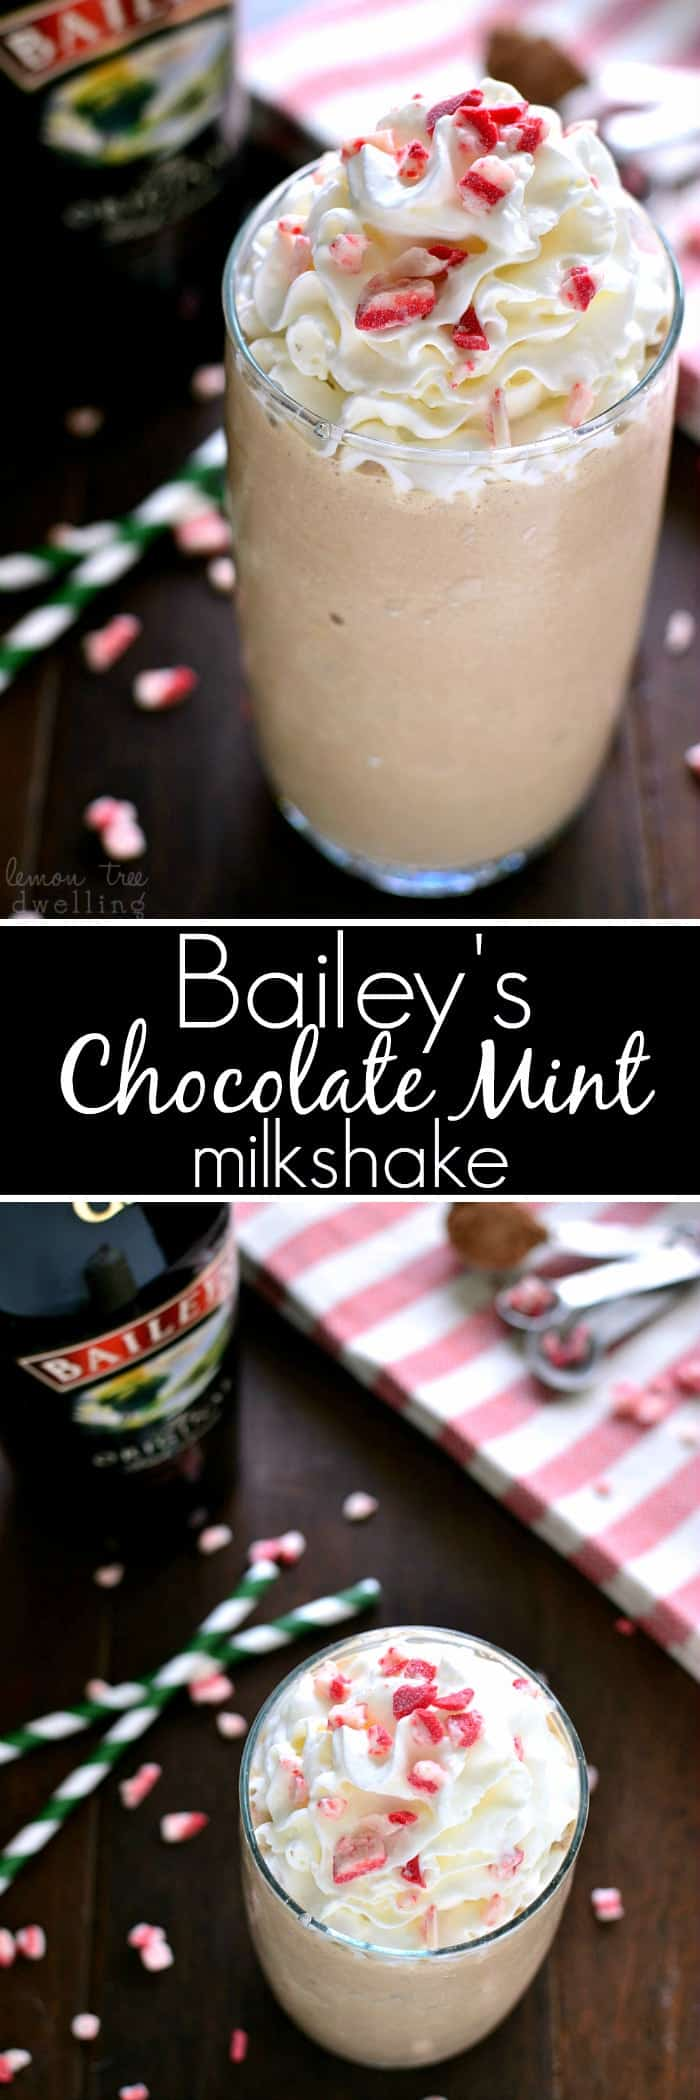 Bailey's Chocolate Mint Milkshake is everything you could want in a milkshake. This holiday drink is so rich and creamy, you won't want to stop at one!